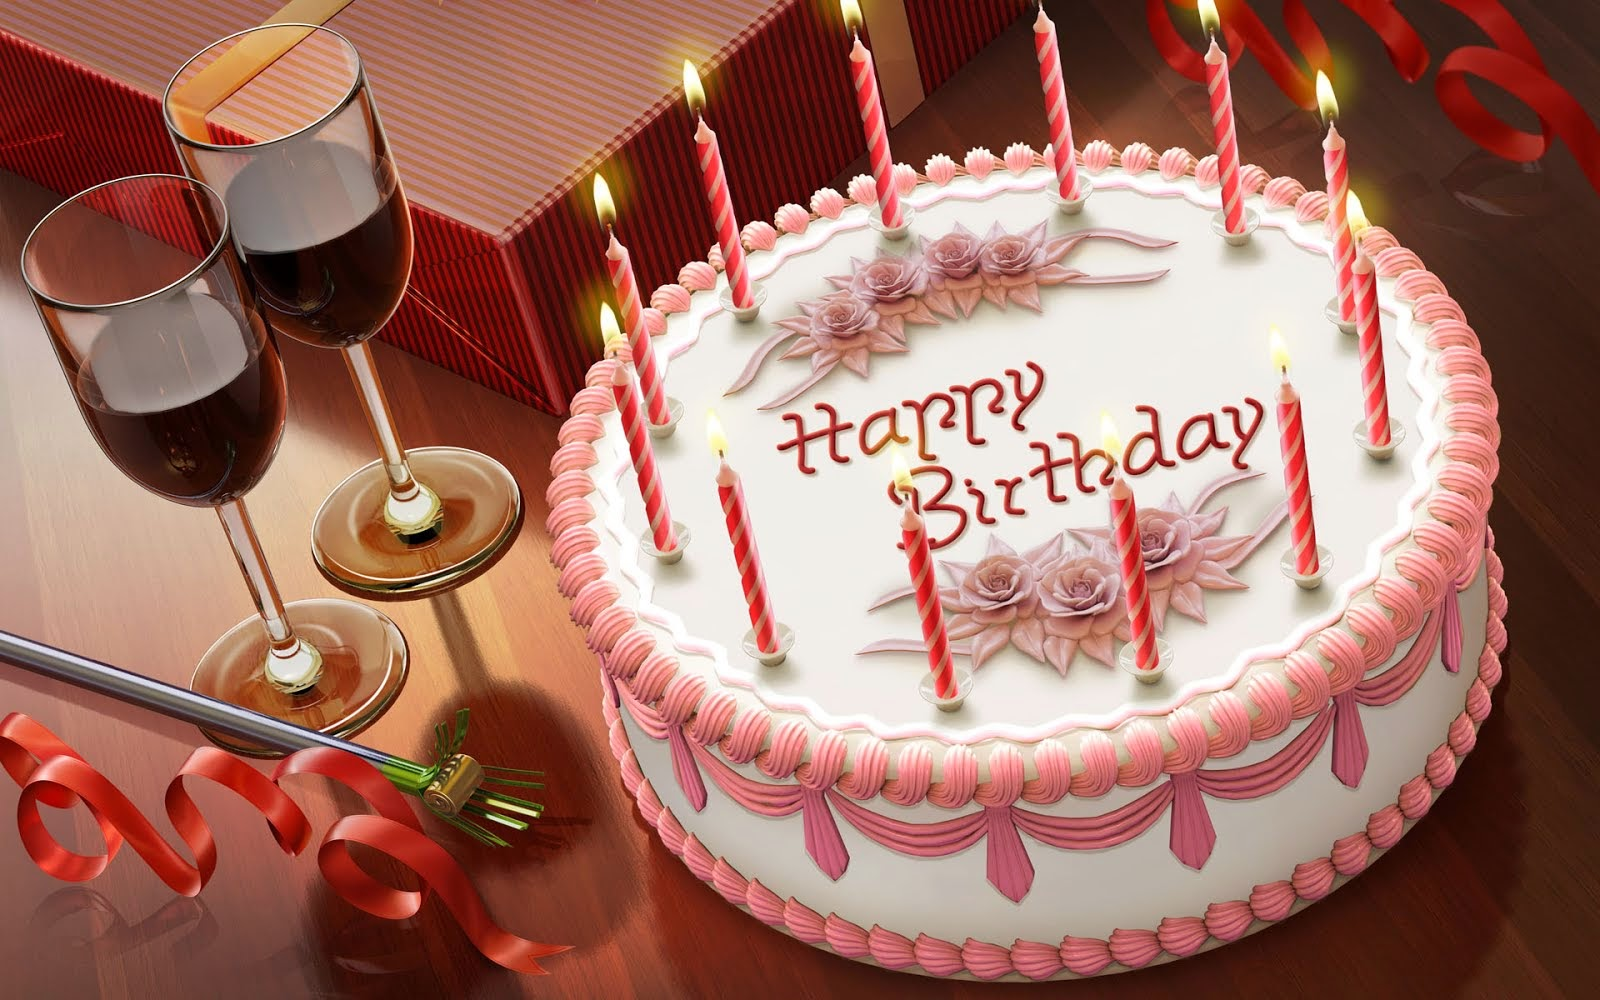 Happy Birthday Wallpapers Download High Definition 1600x1000